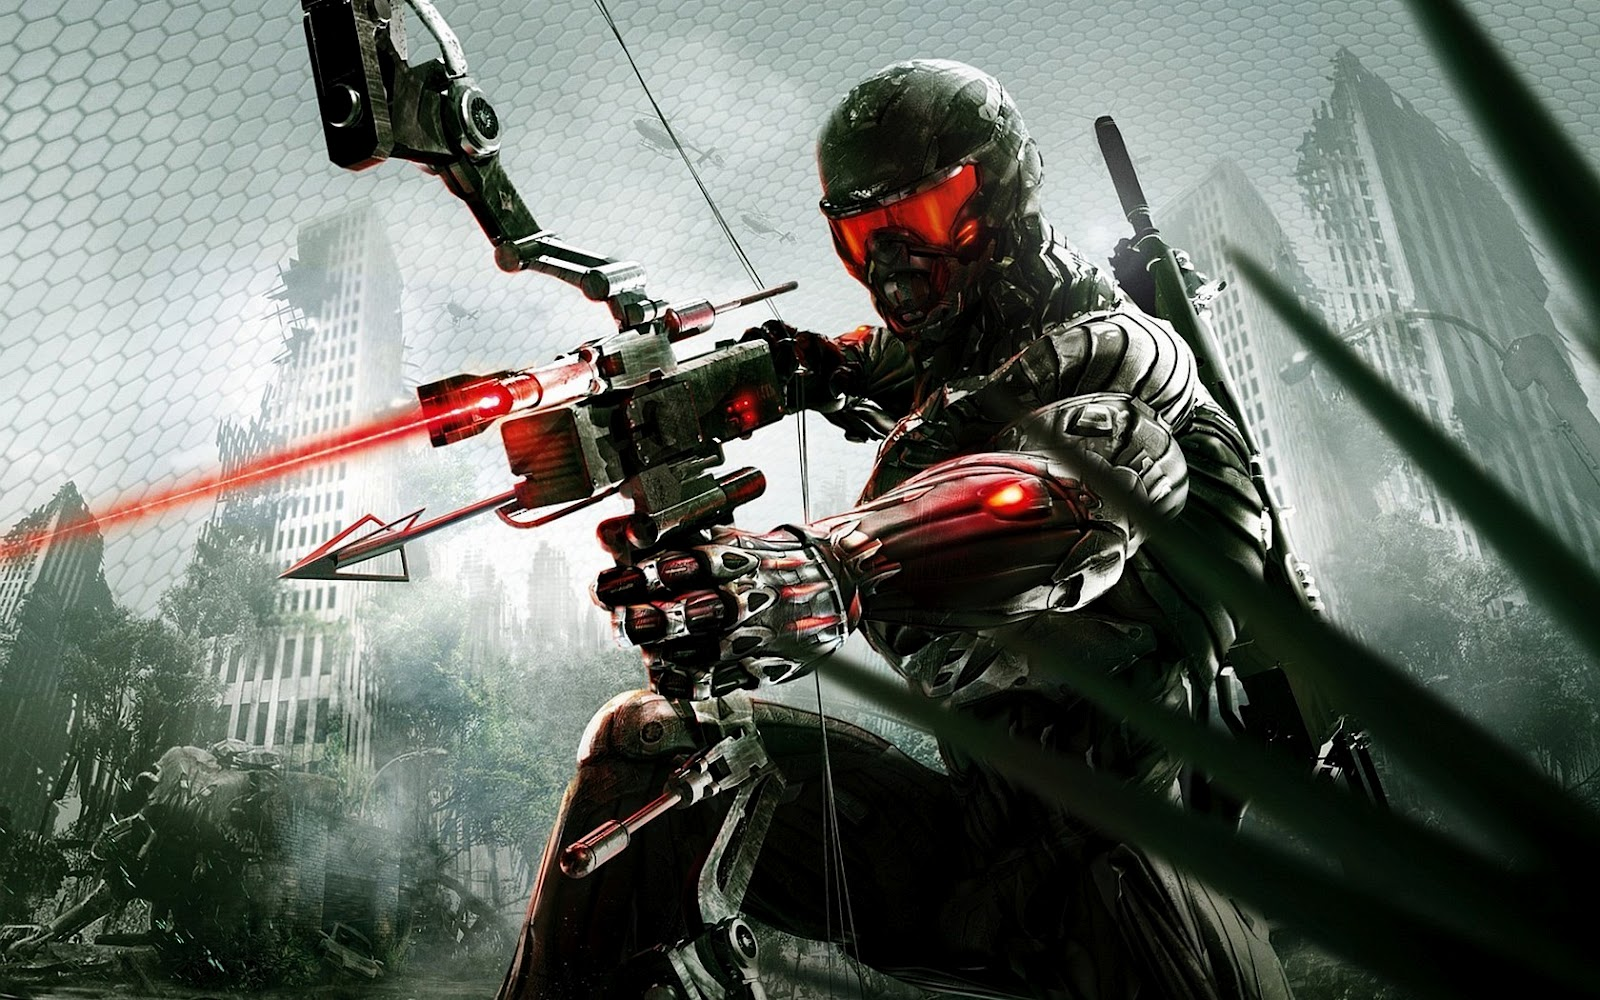 Crysis 3 New Game HD Wallpapers and Dvd Cover Download Free Wallpapers